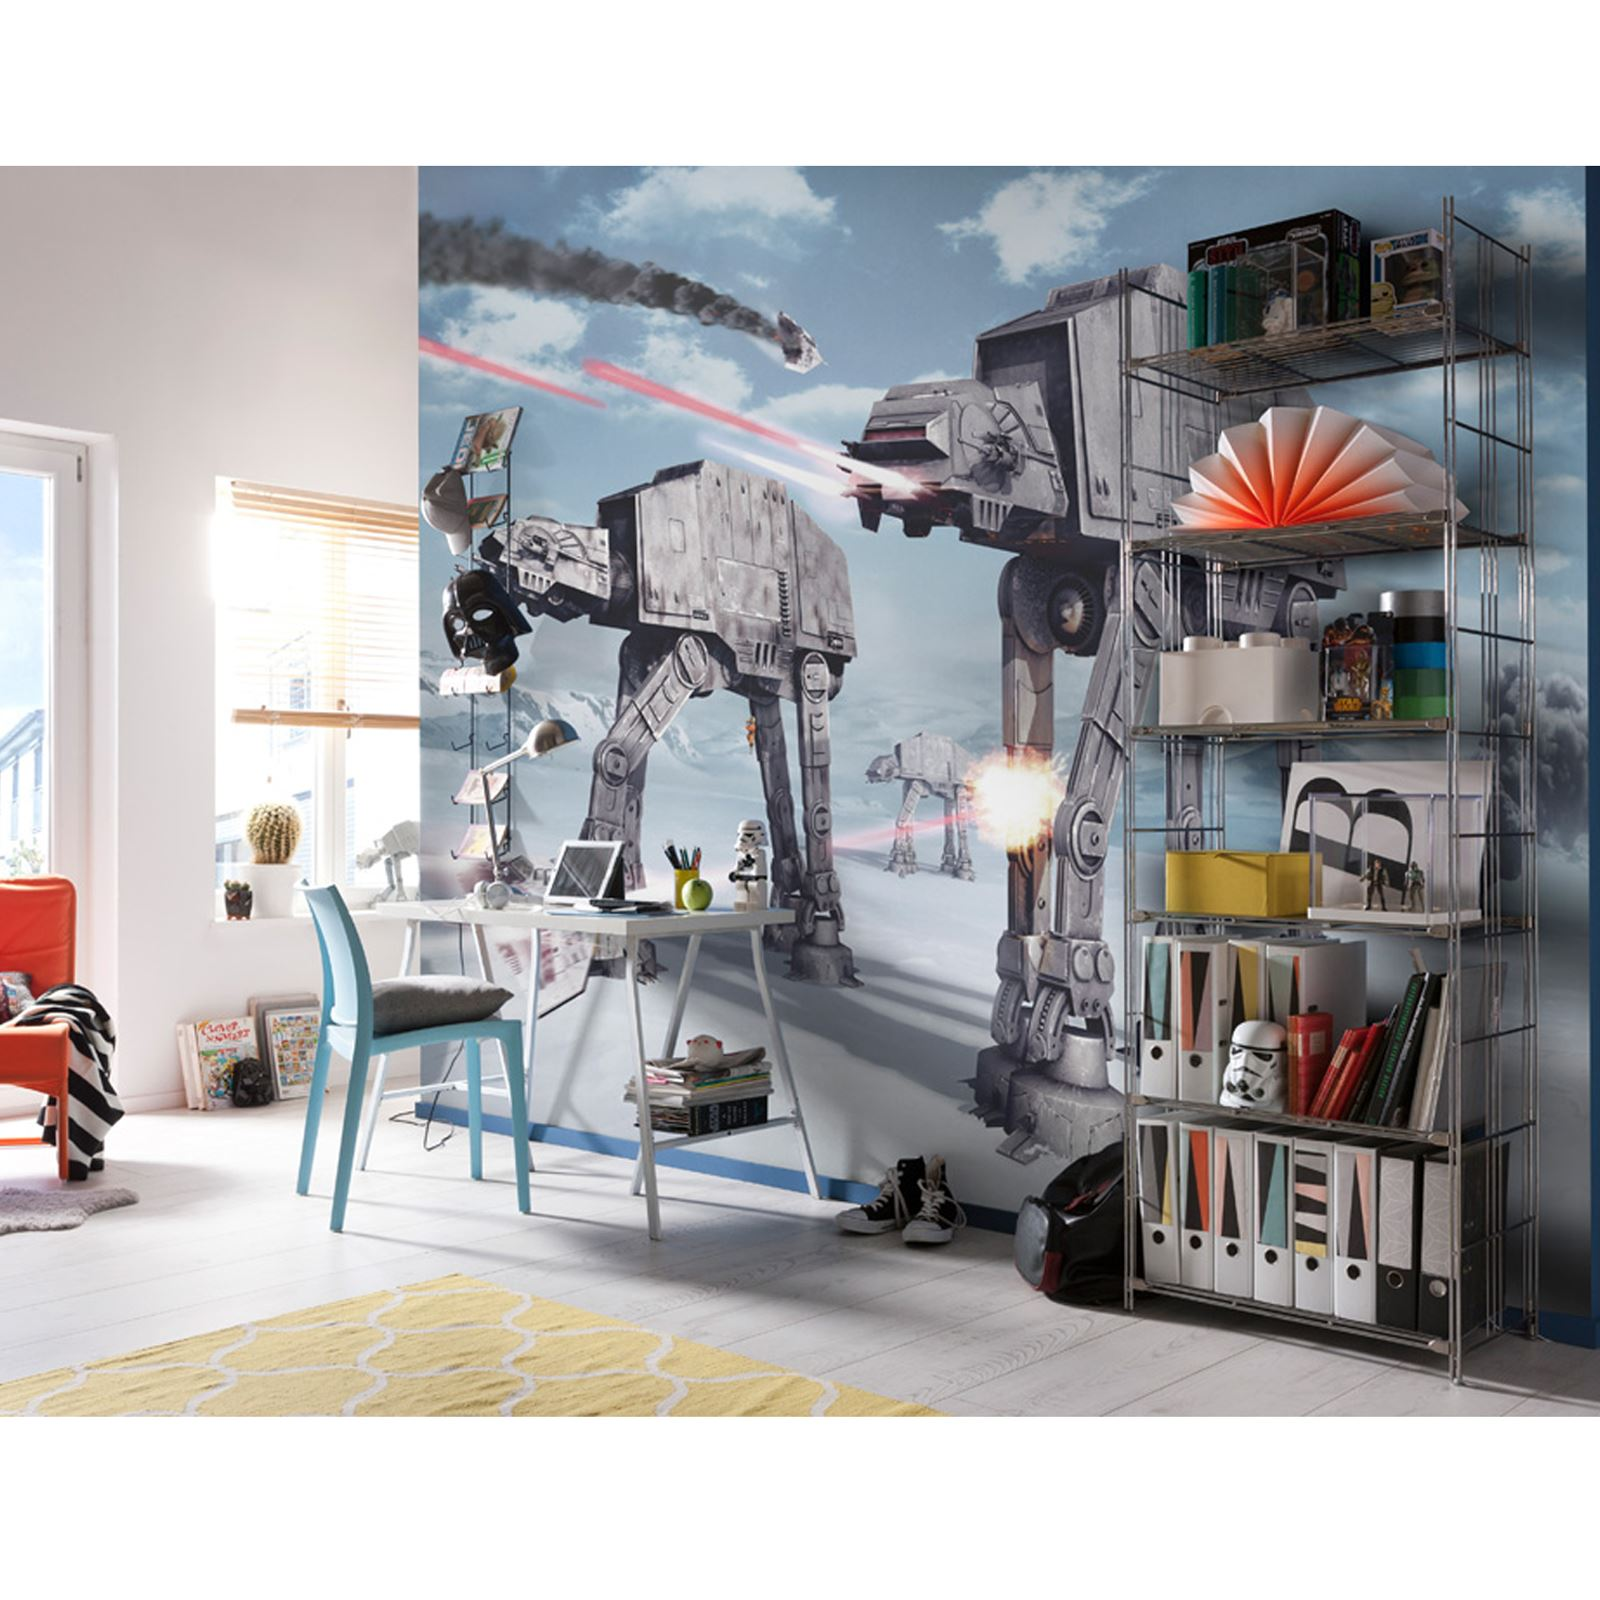 STAR WARS WALL MURALS CHARACTERS VARIOUS DESIGNS STYLES WALL ART